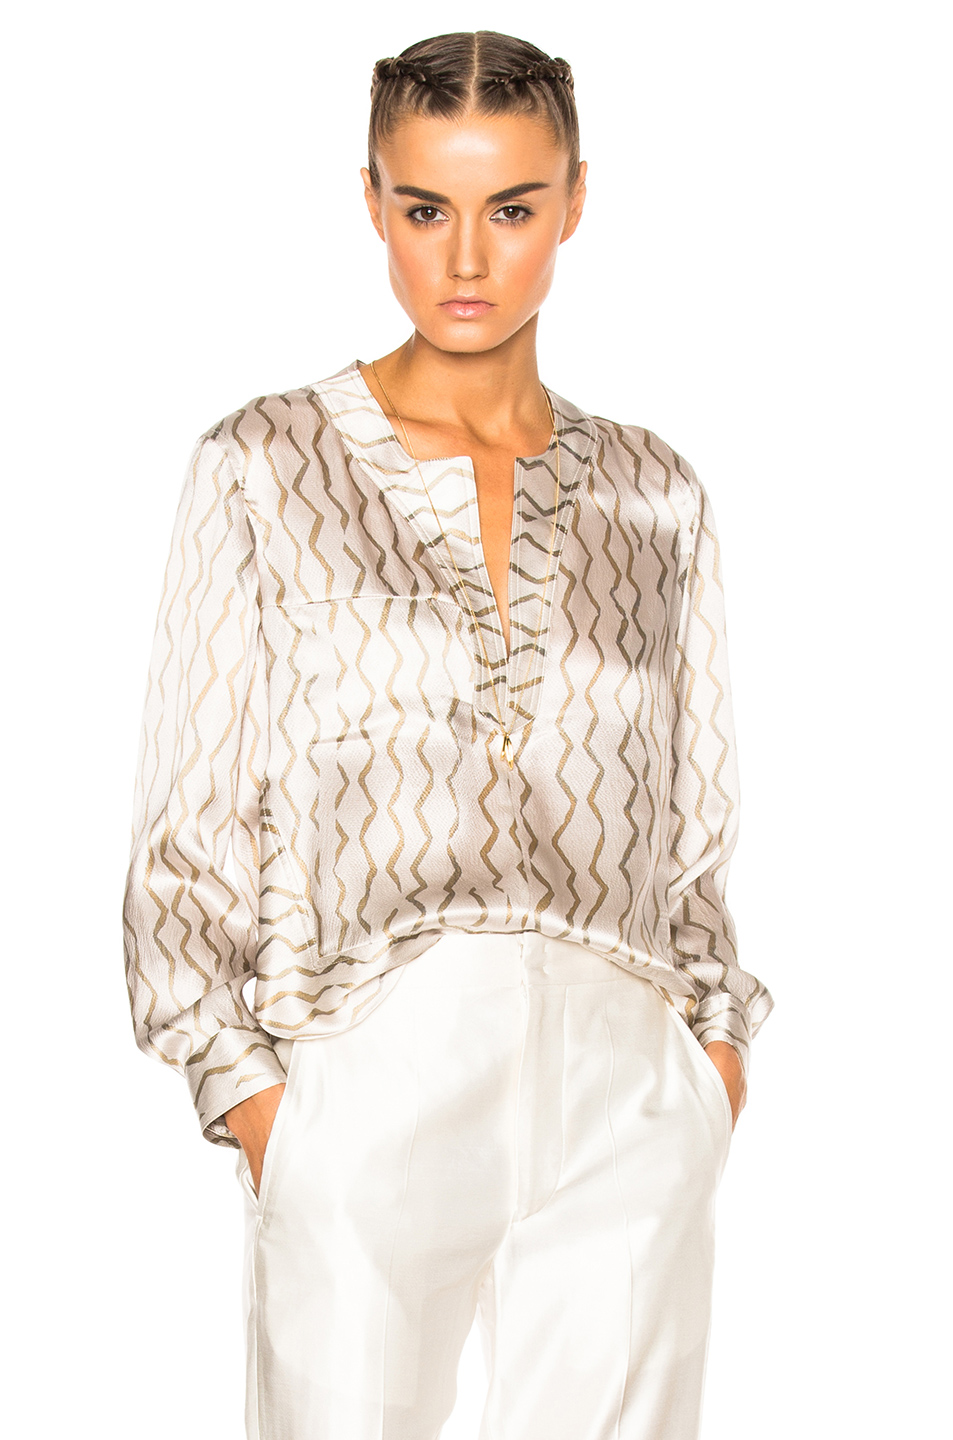 Isabel Marant Simon Blouse in Abstract,Neutrals,White